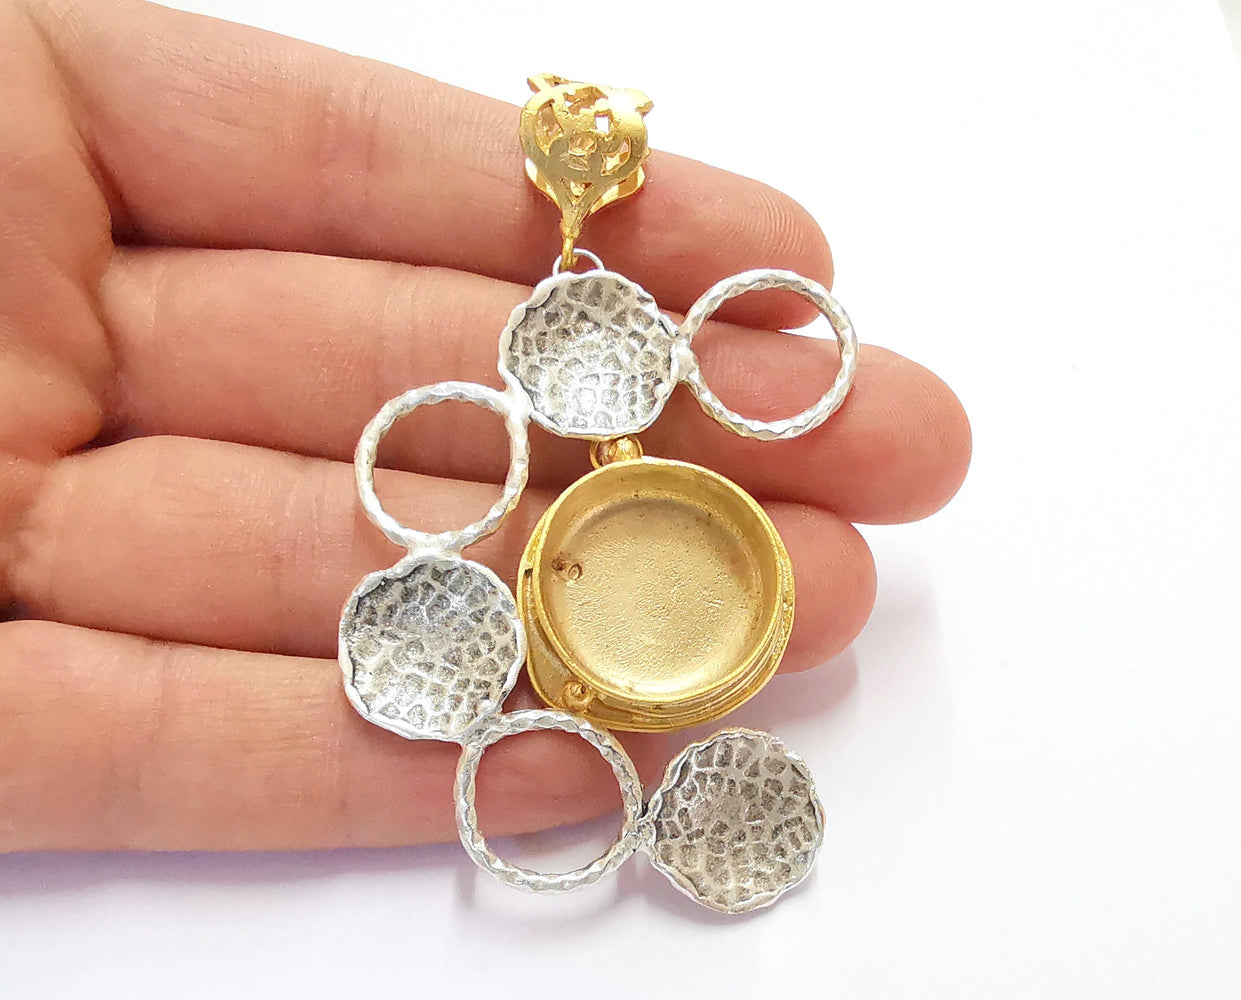 Hammered Circle Pendant Blank Resin Bezel Mosaic Mountings Antique Silver and Gold Plated Brass (80x48mm)( 20mm Bezel Inner Size)  G19878